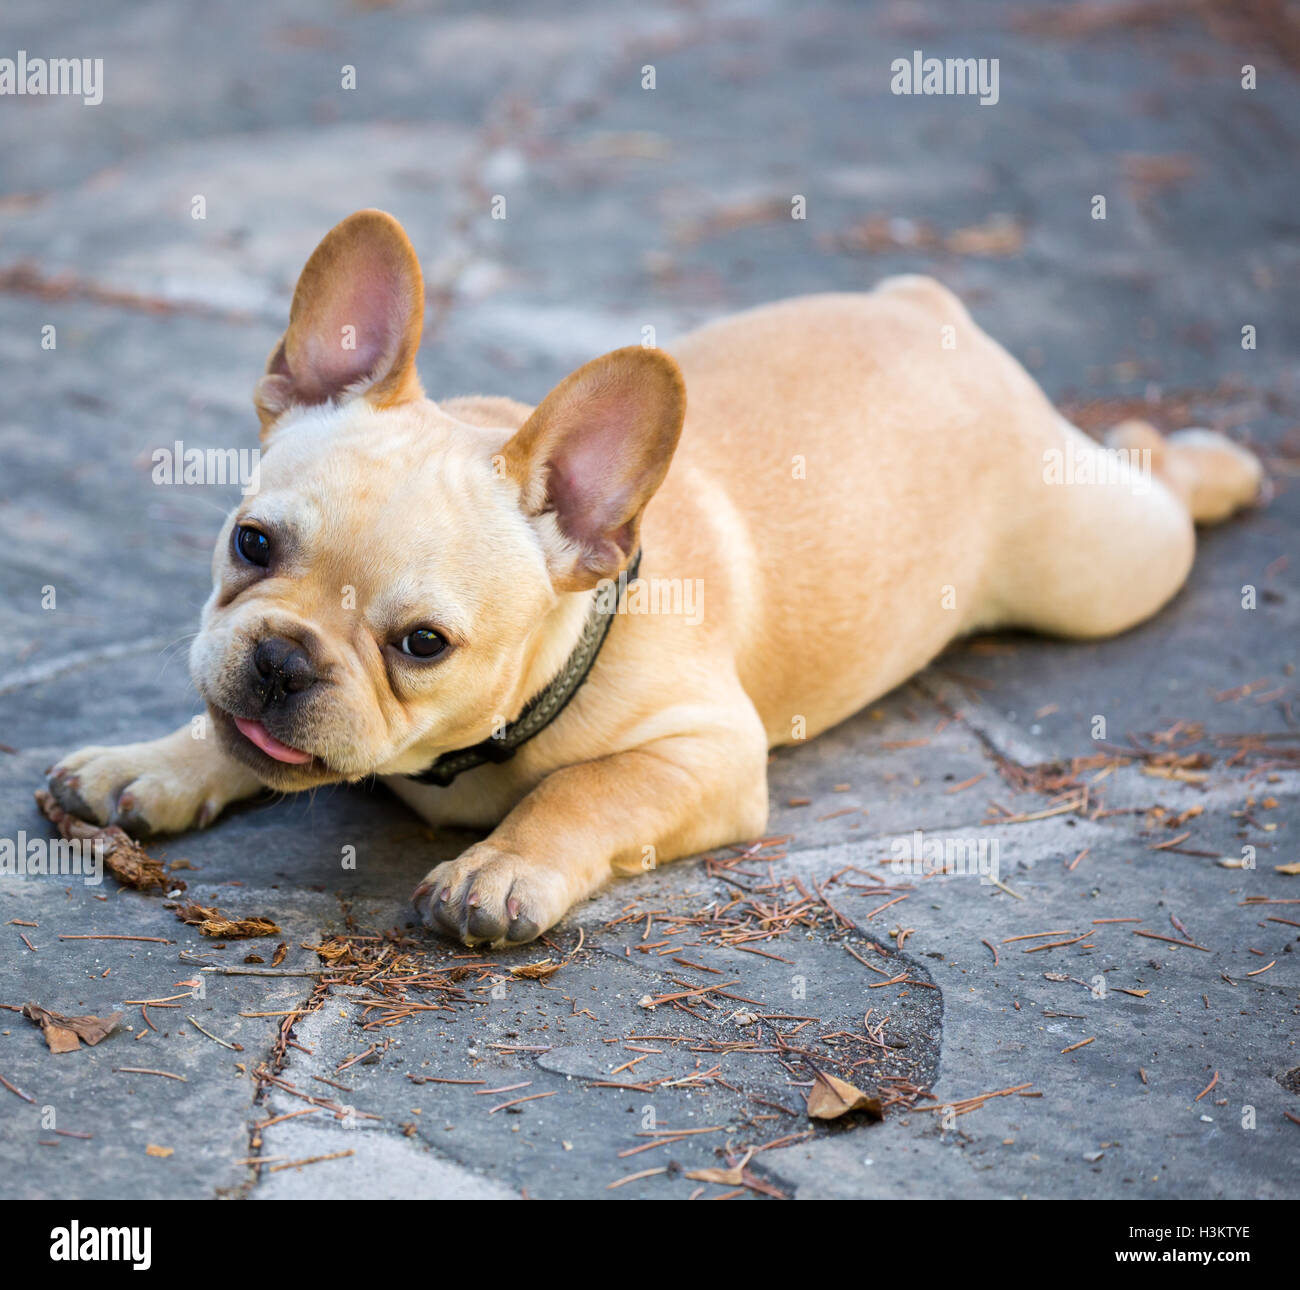 French Bulldog Puppy - Canis lupus familiaris - Stock Image